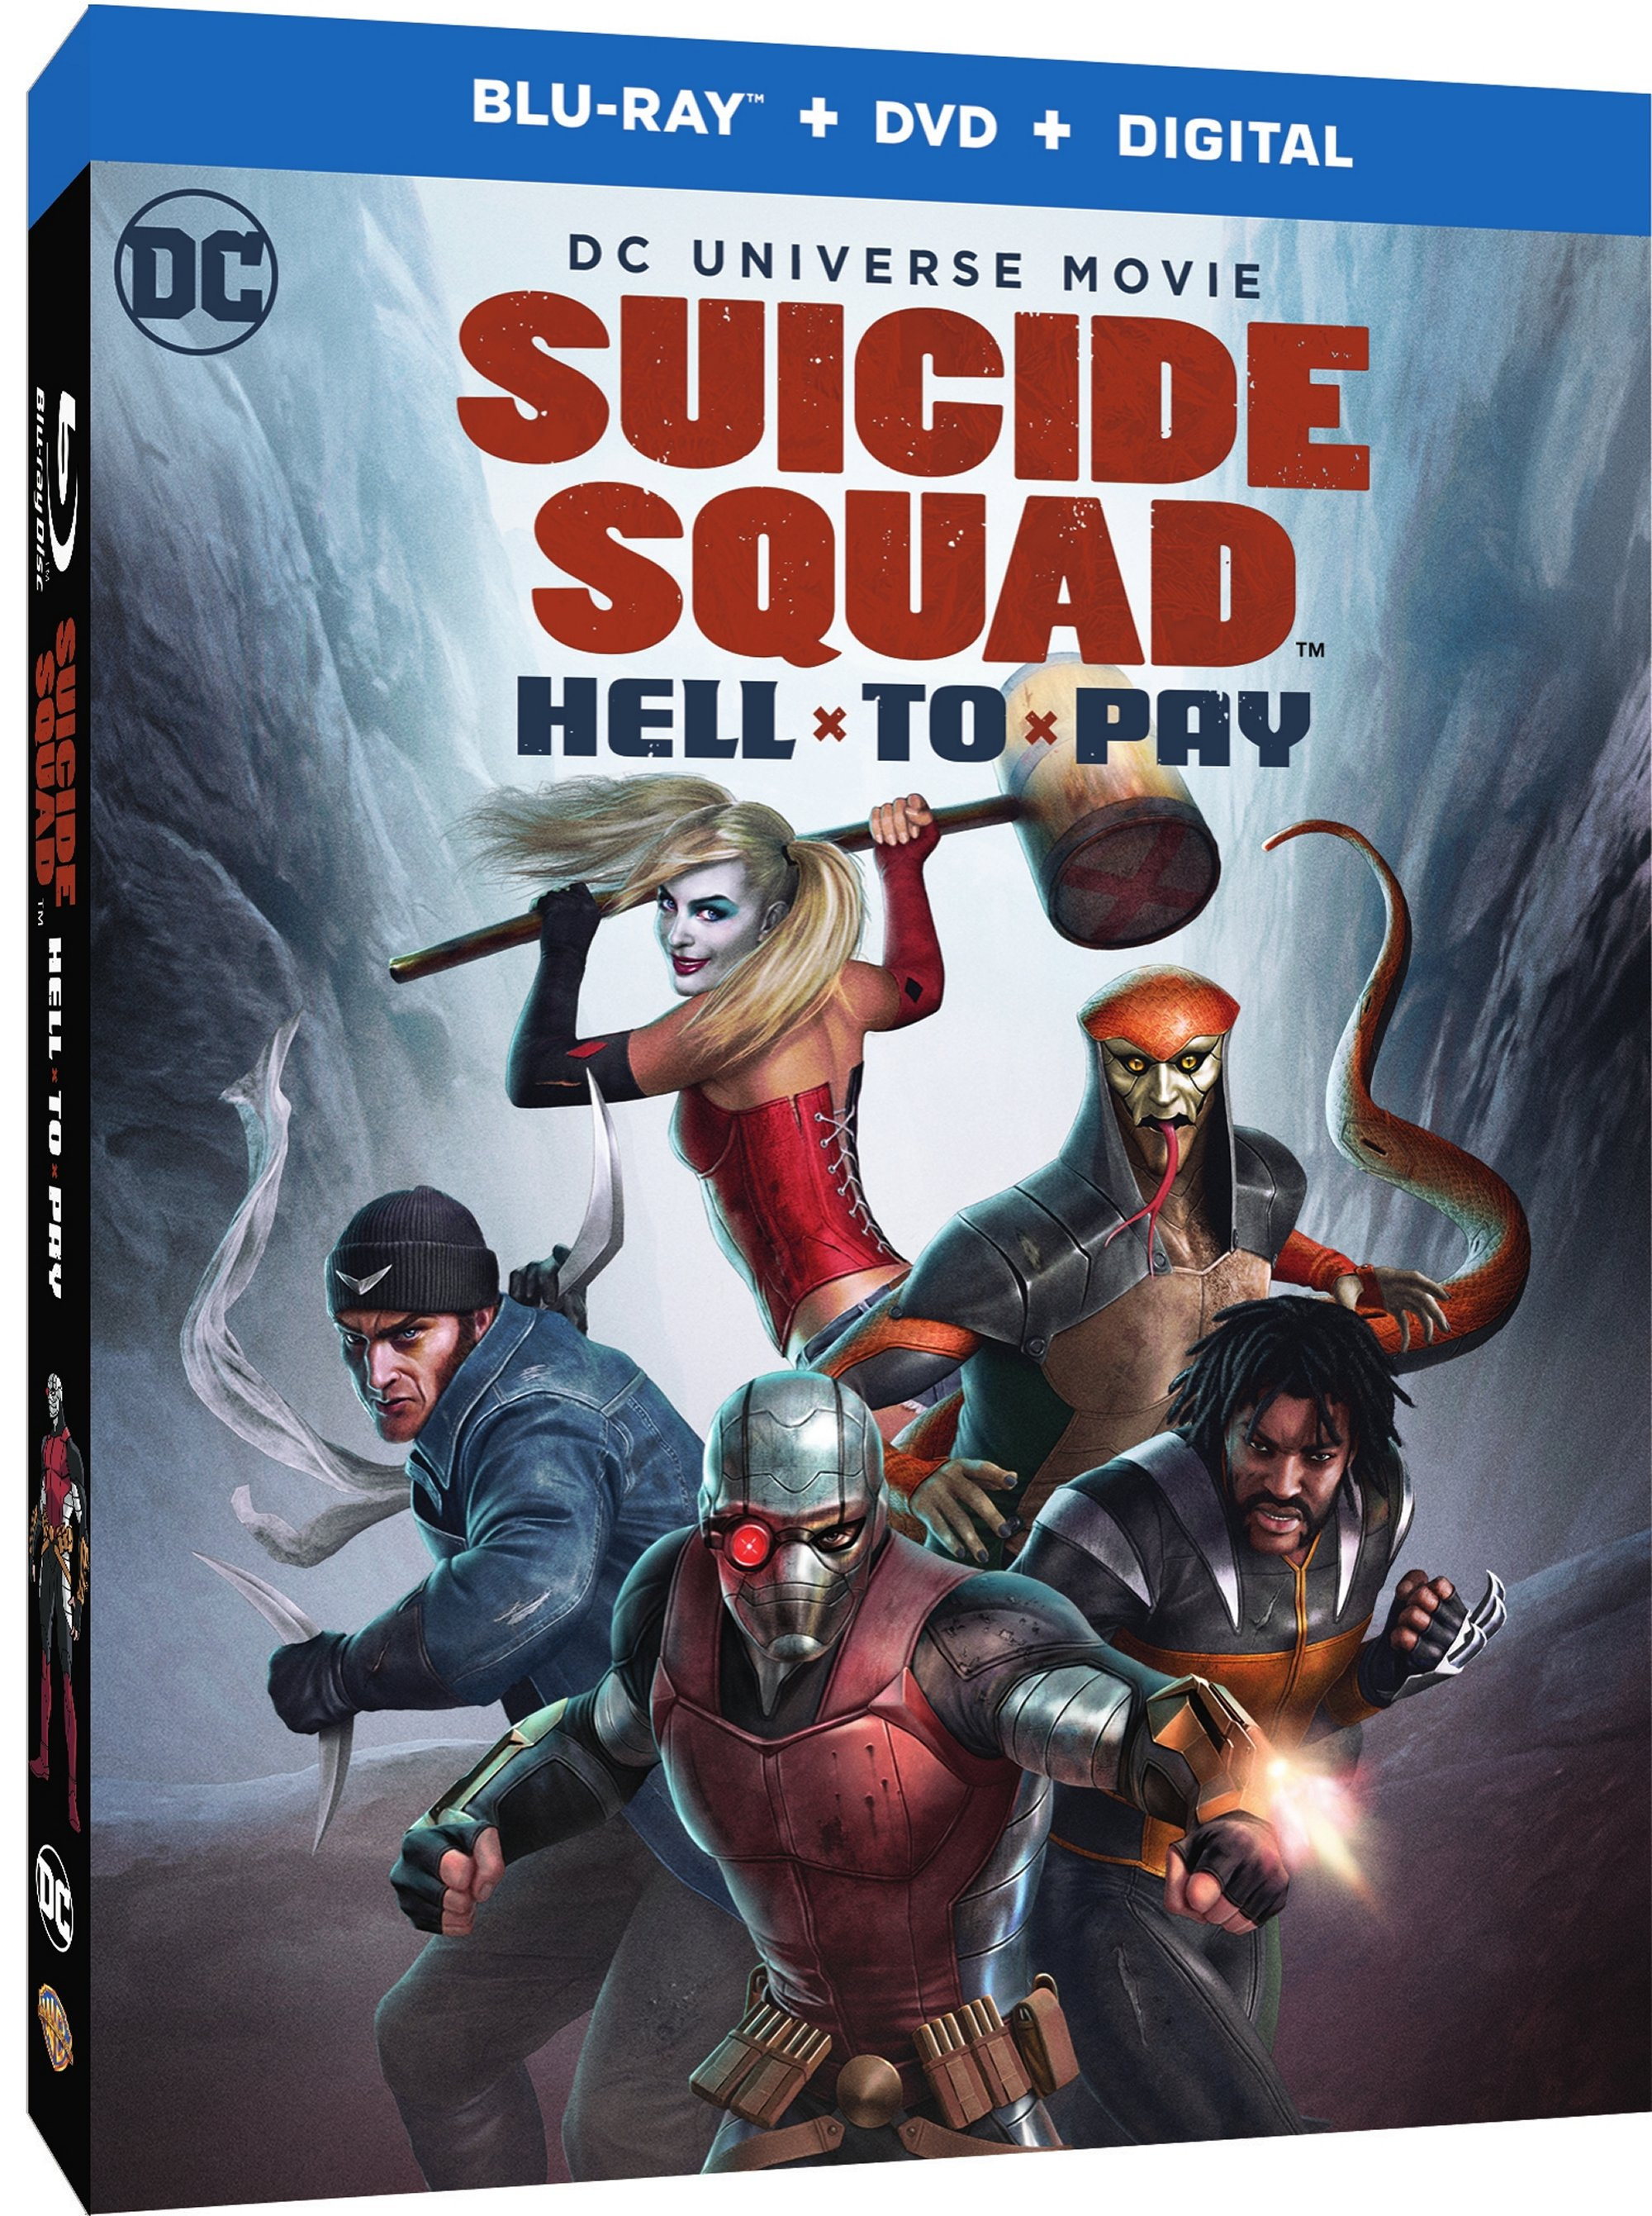 SUICIDE SQUAD: HELL TO PAY  Blu-ray